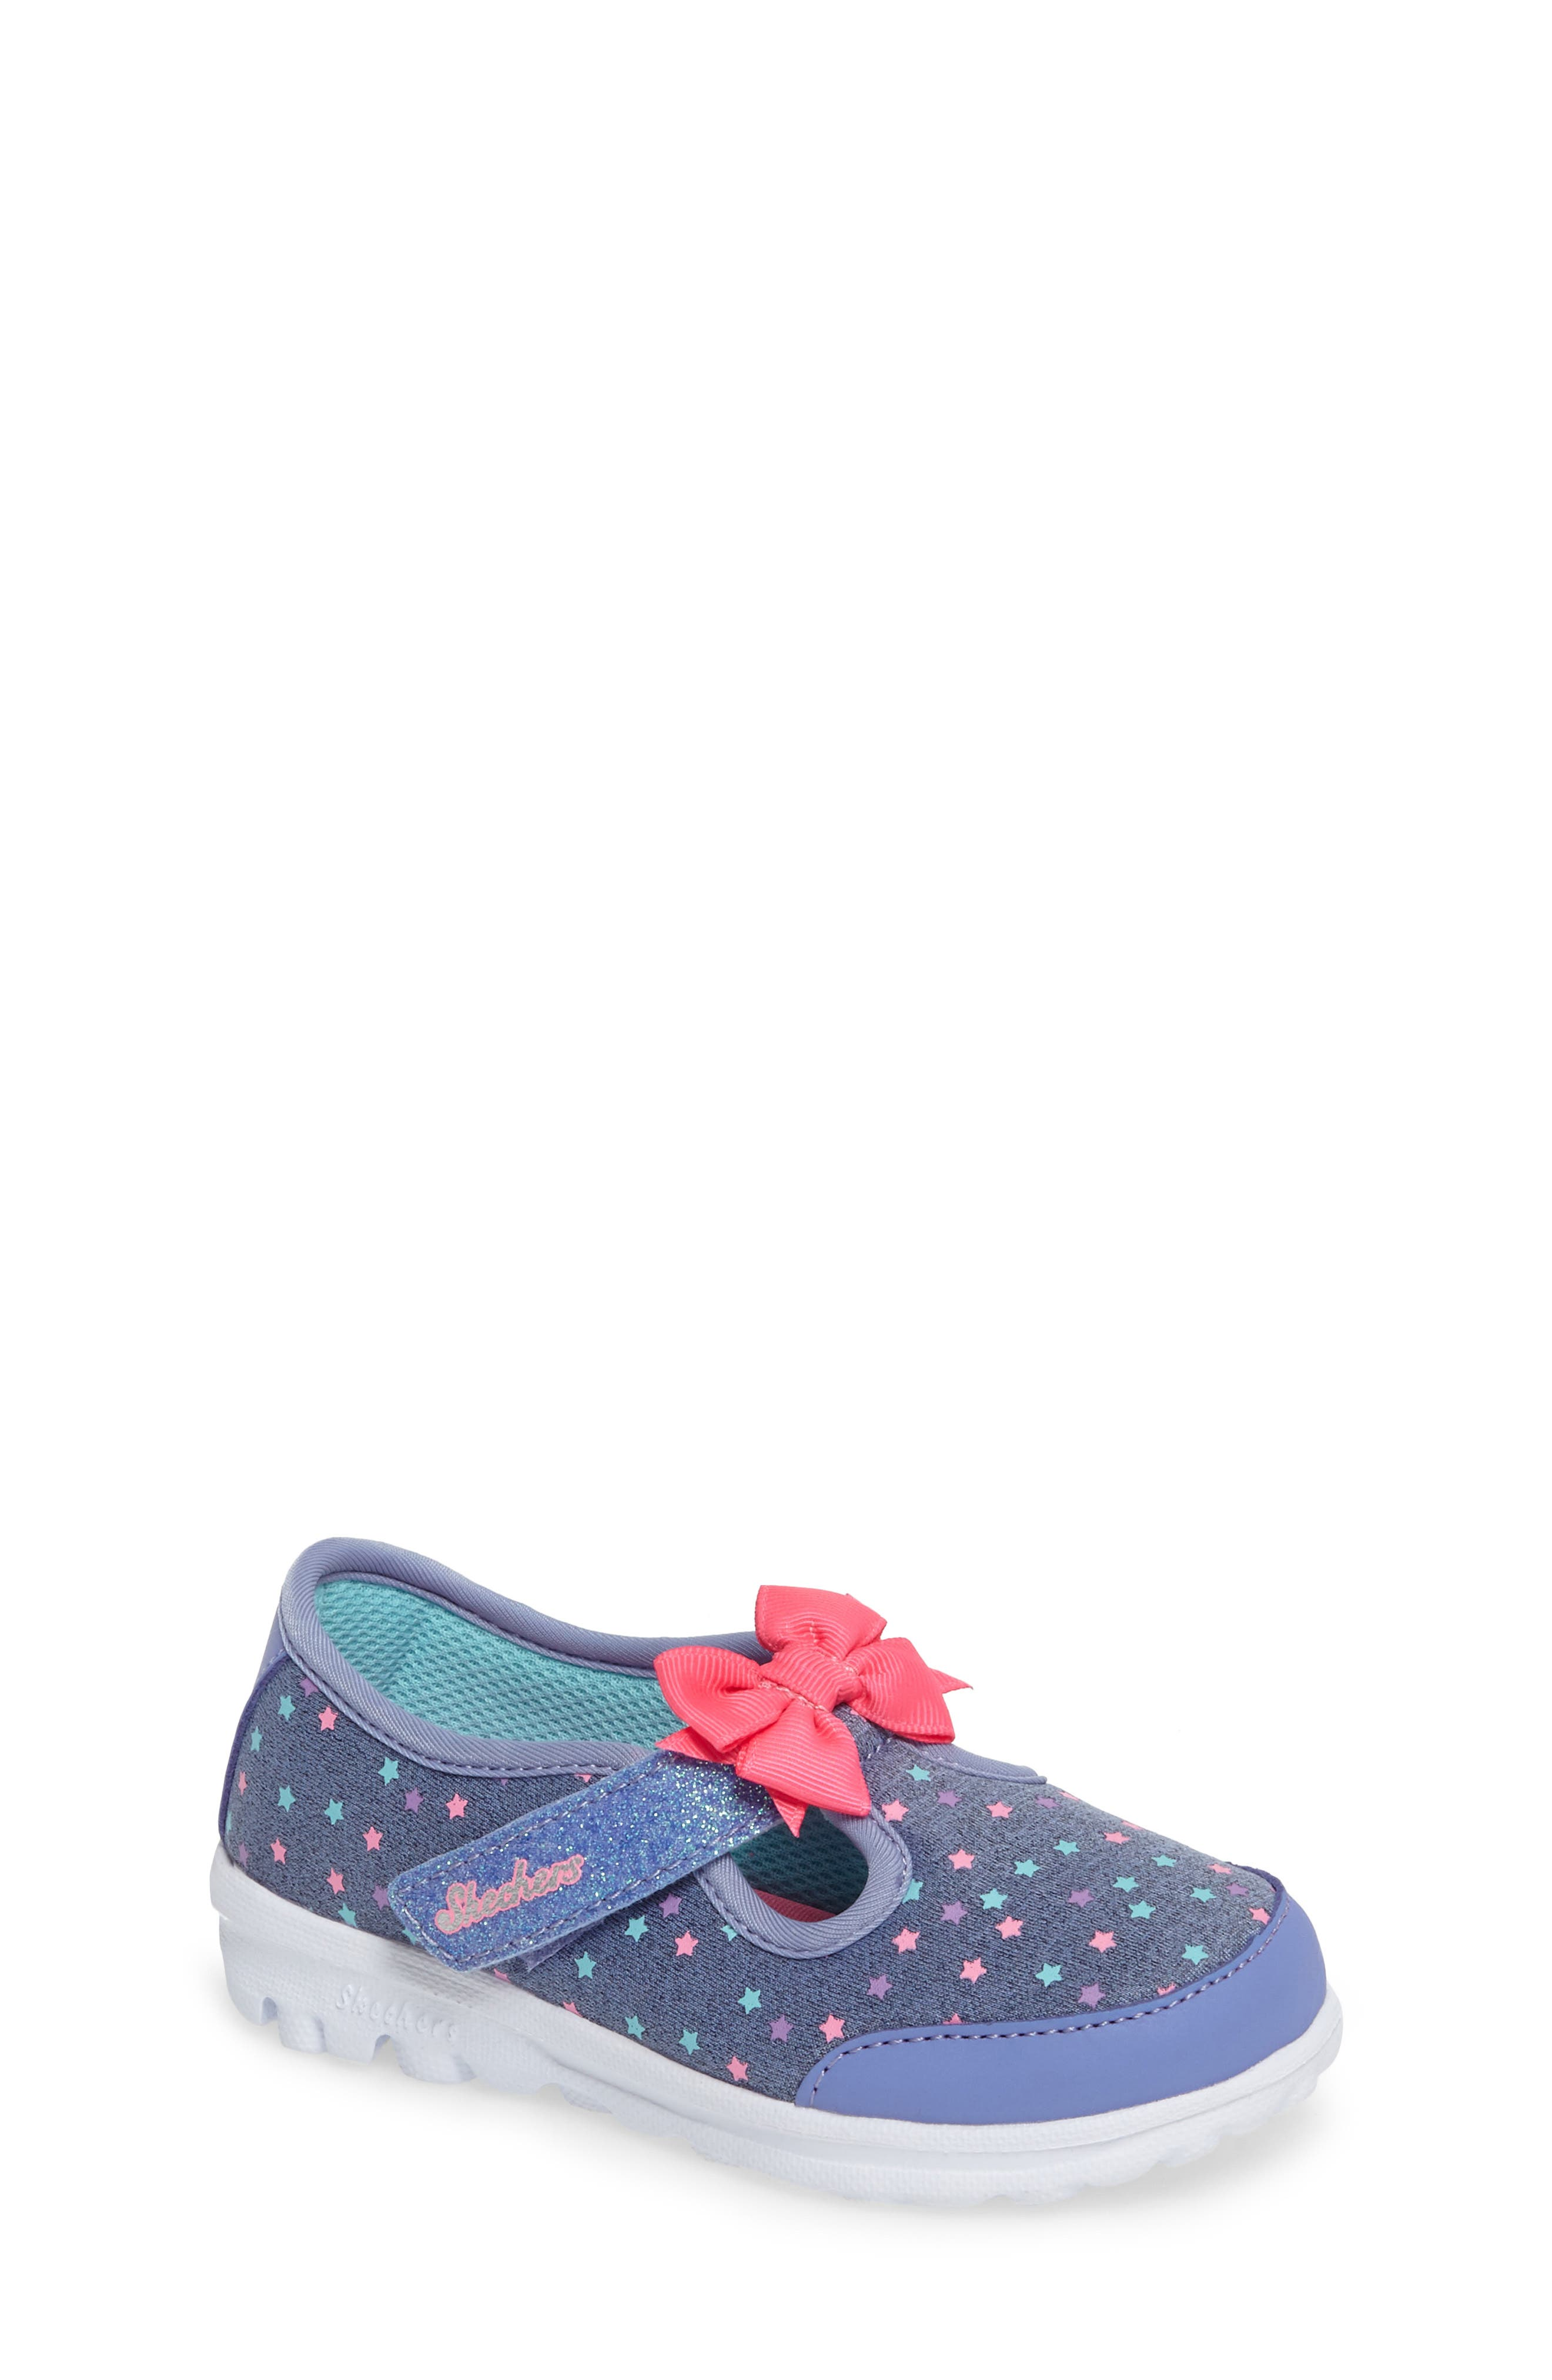 SKECHERS Go Walk Slip-On Sneaker (Baby, Walker, Toddler & Little Kid)